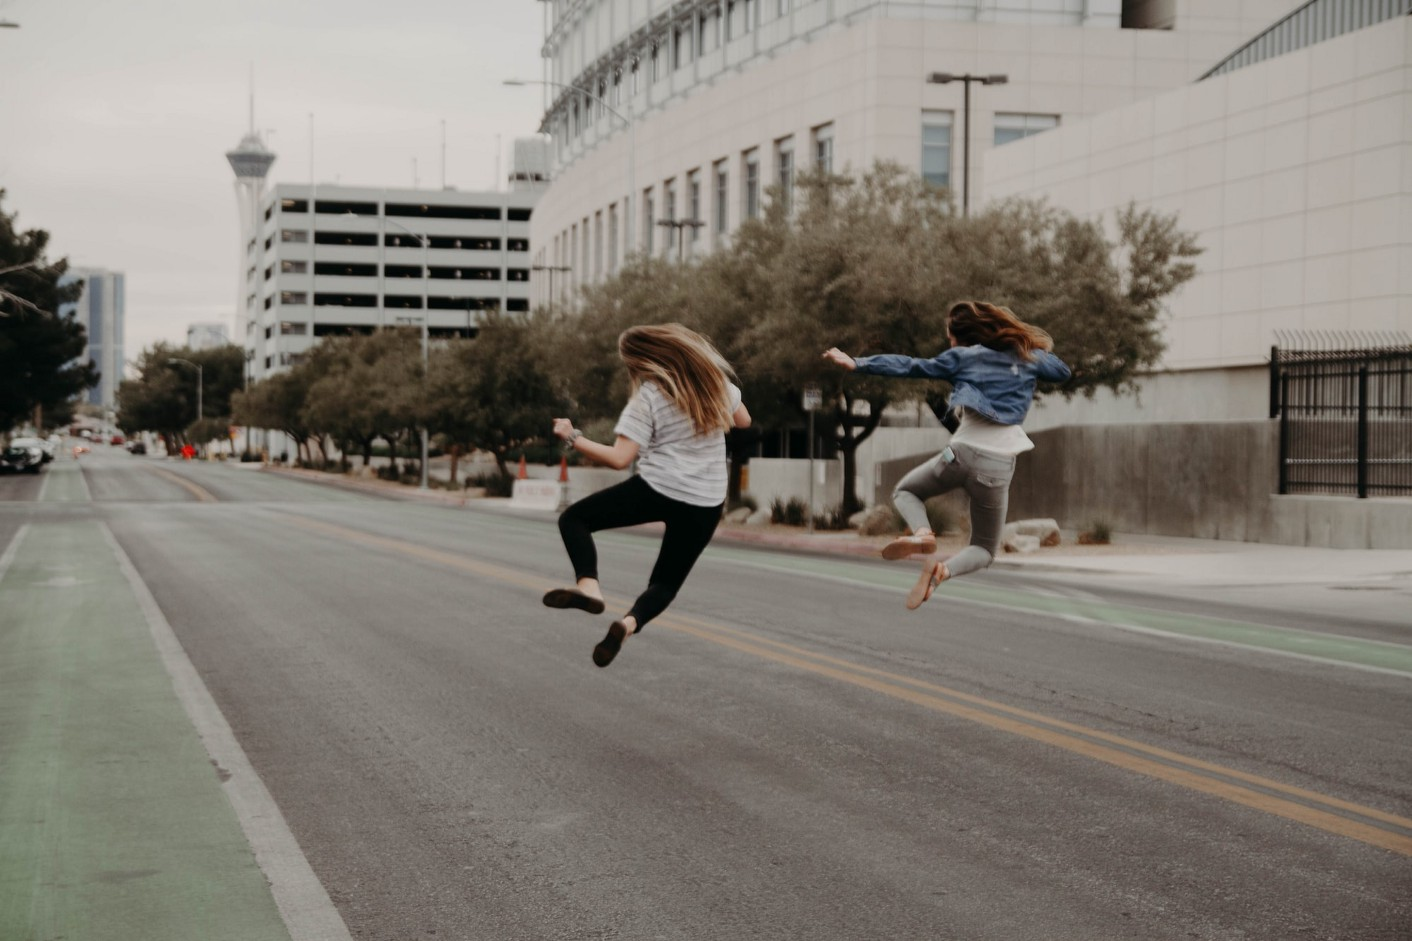 An image of two girls jumping on a road.